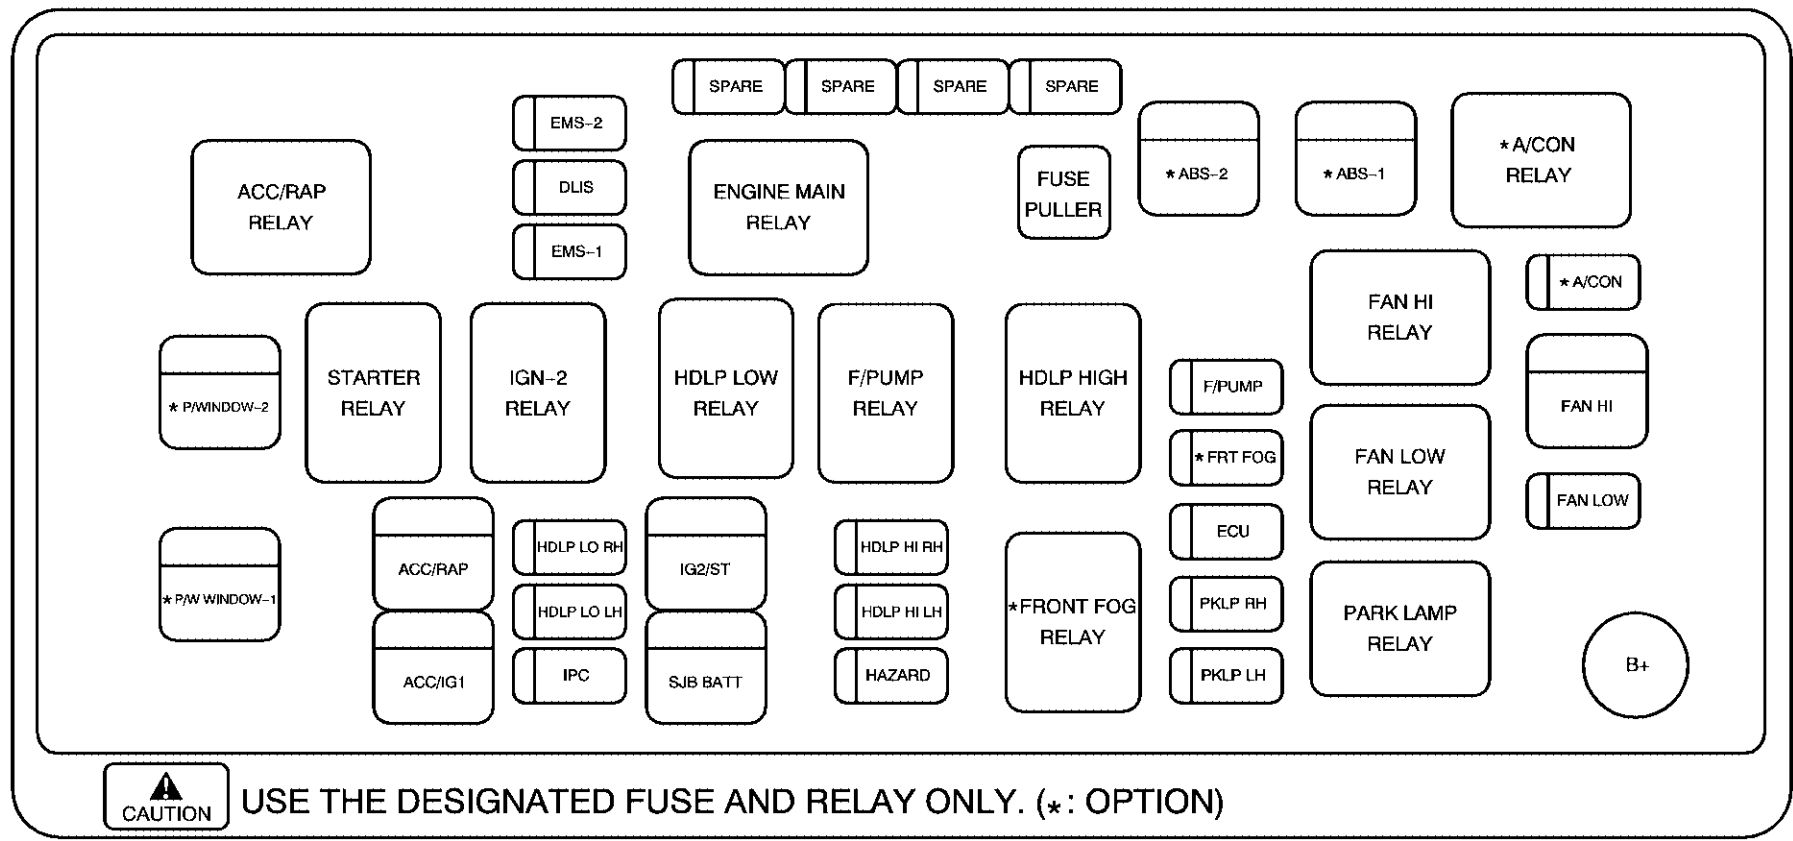 hight resolution of chevrolet aveo fuse box diagram wiring diagram show2009 chevy aveo fuse diagram wiring diagram rows 2009